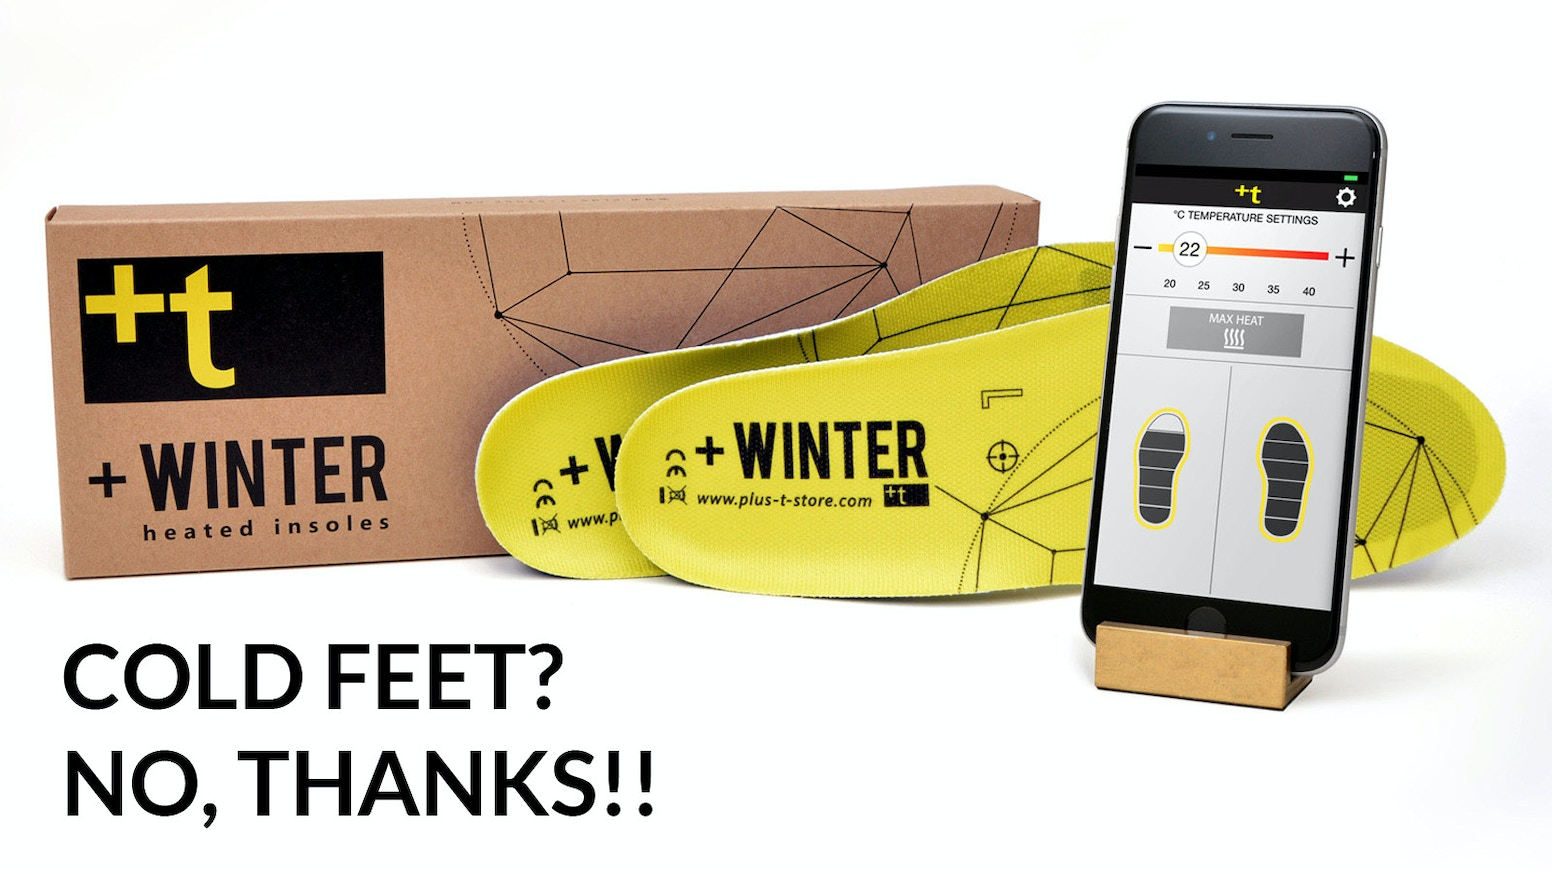 +Winter insoles are controlled with APP, splashproof, incredibly light and wafer-thin: turn them on and enjoy the most amazing warmth!